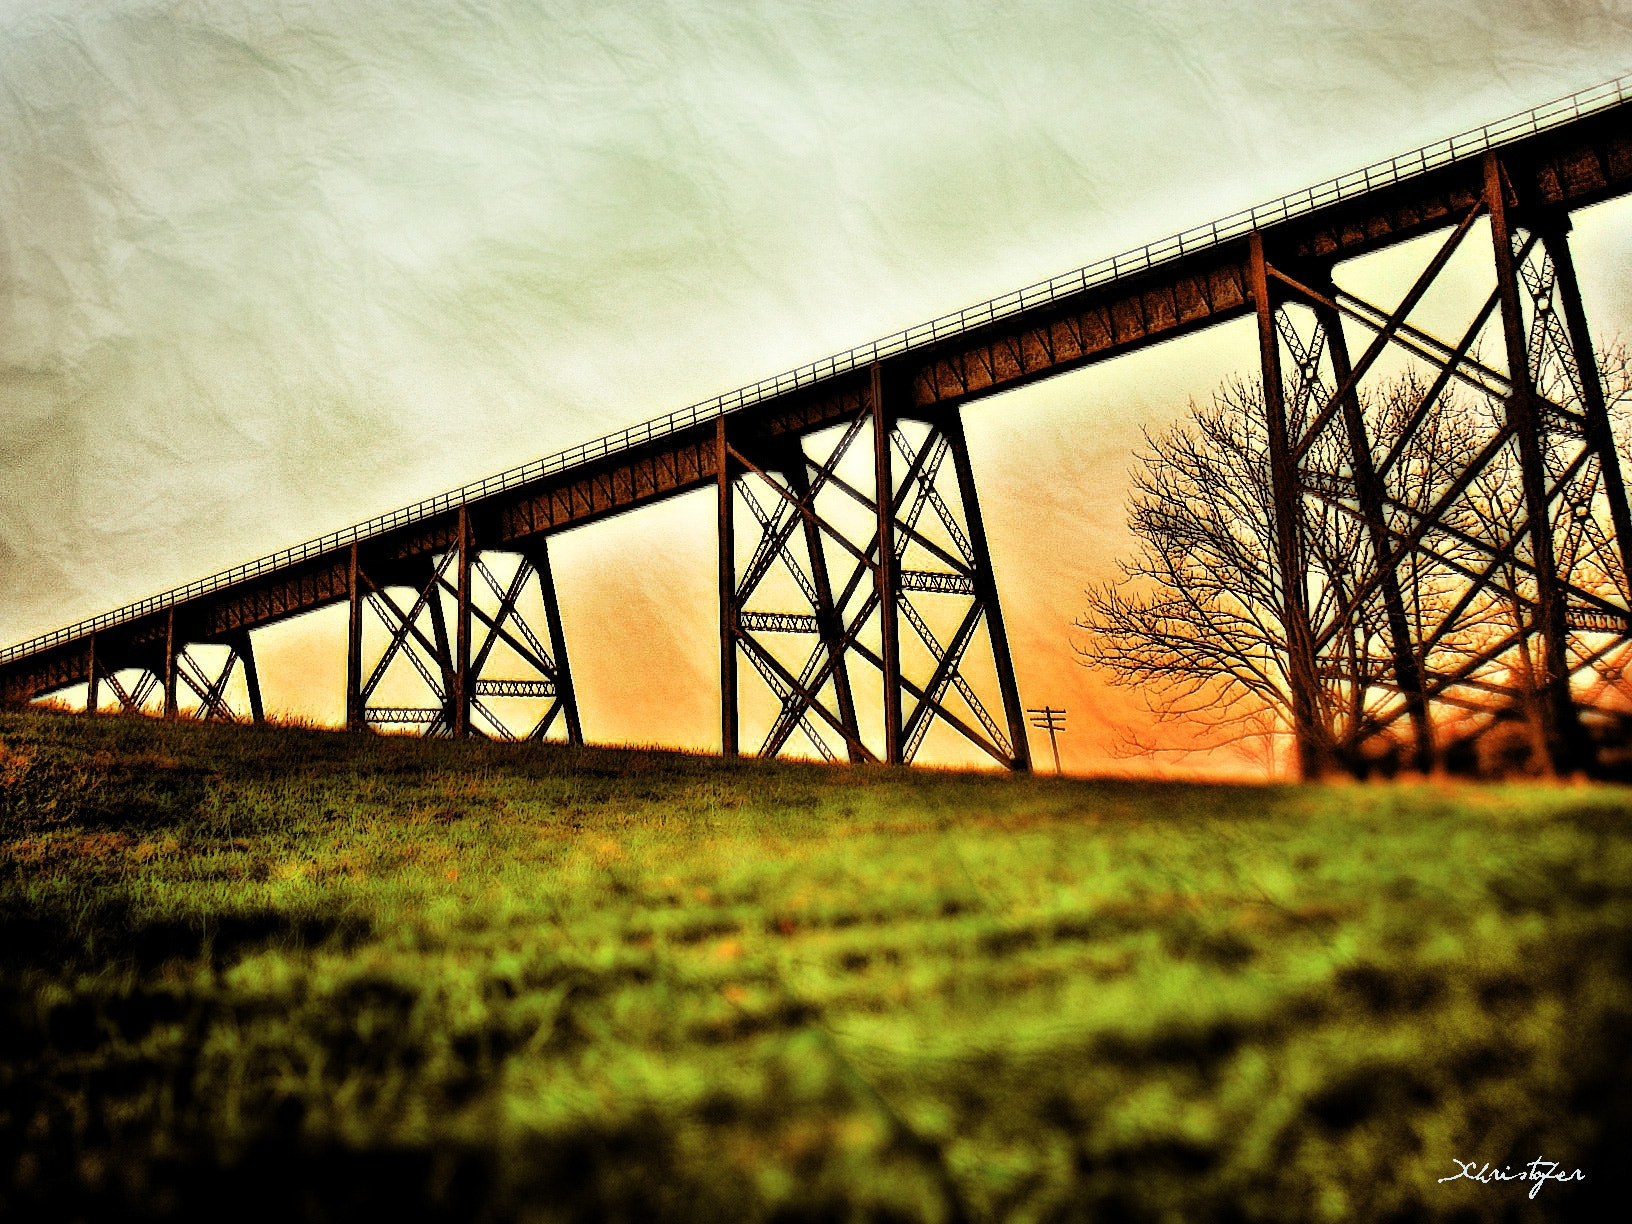 Photograph Moodna Aqueduct by Xhristofer Le'Ur on 500px